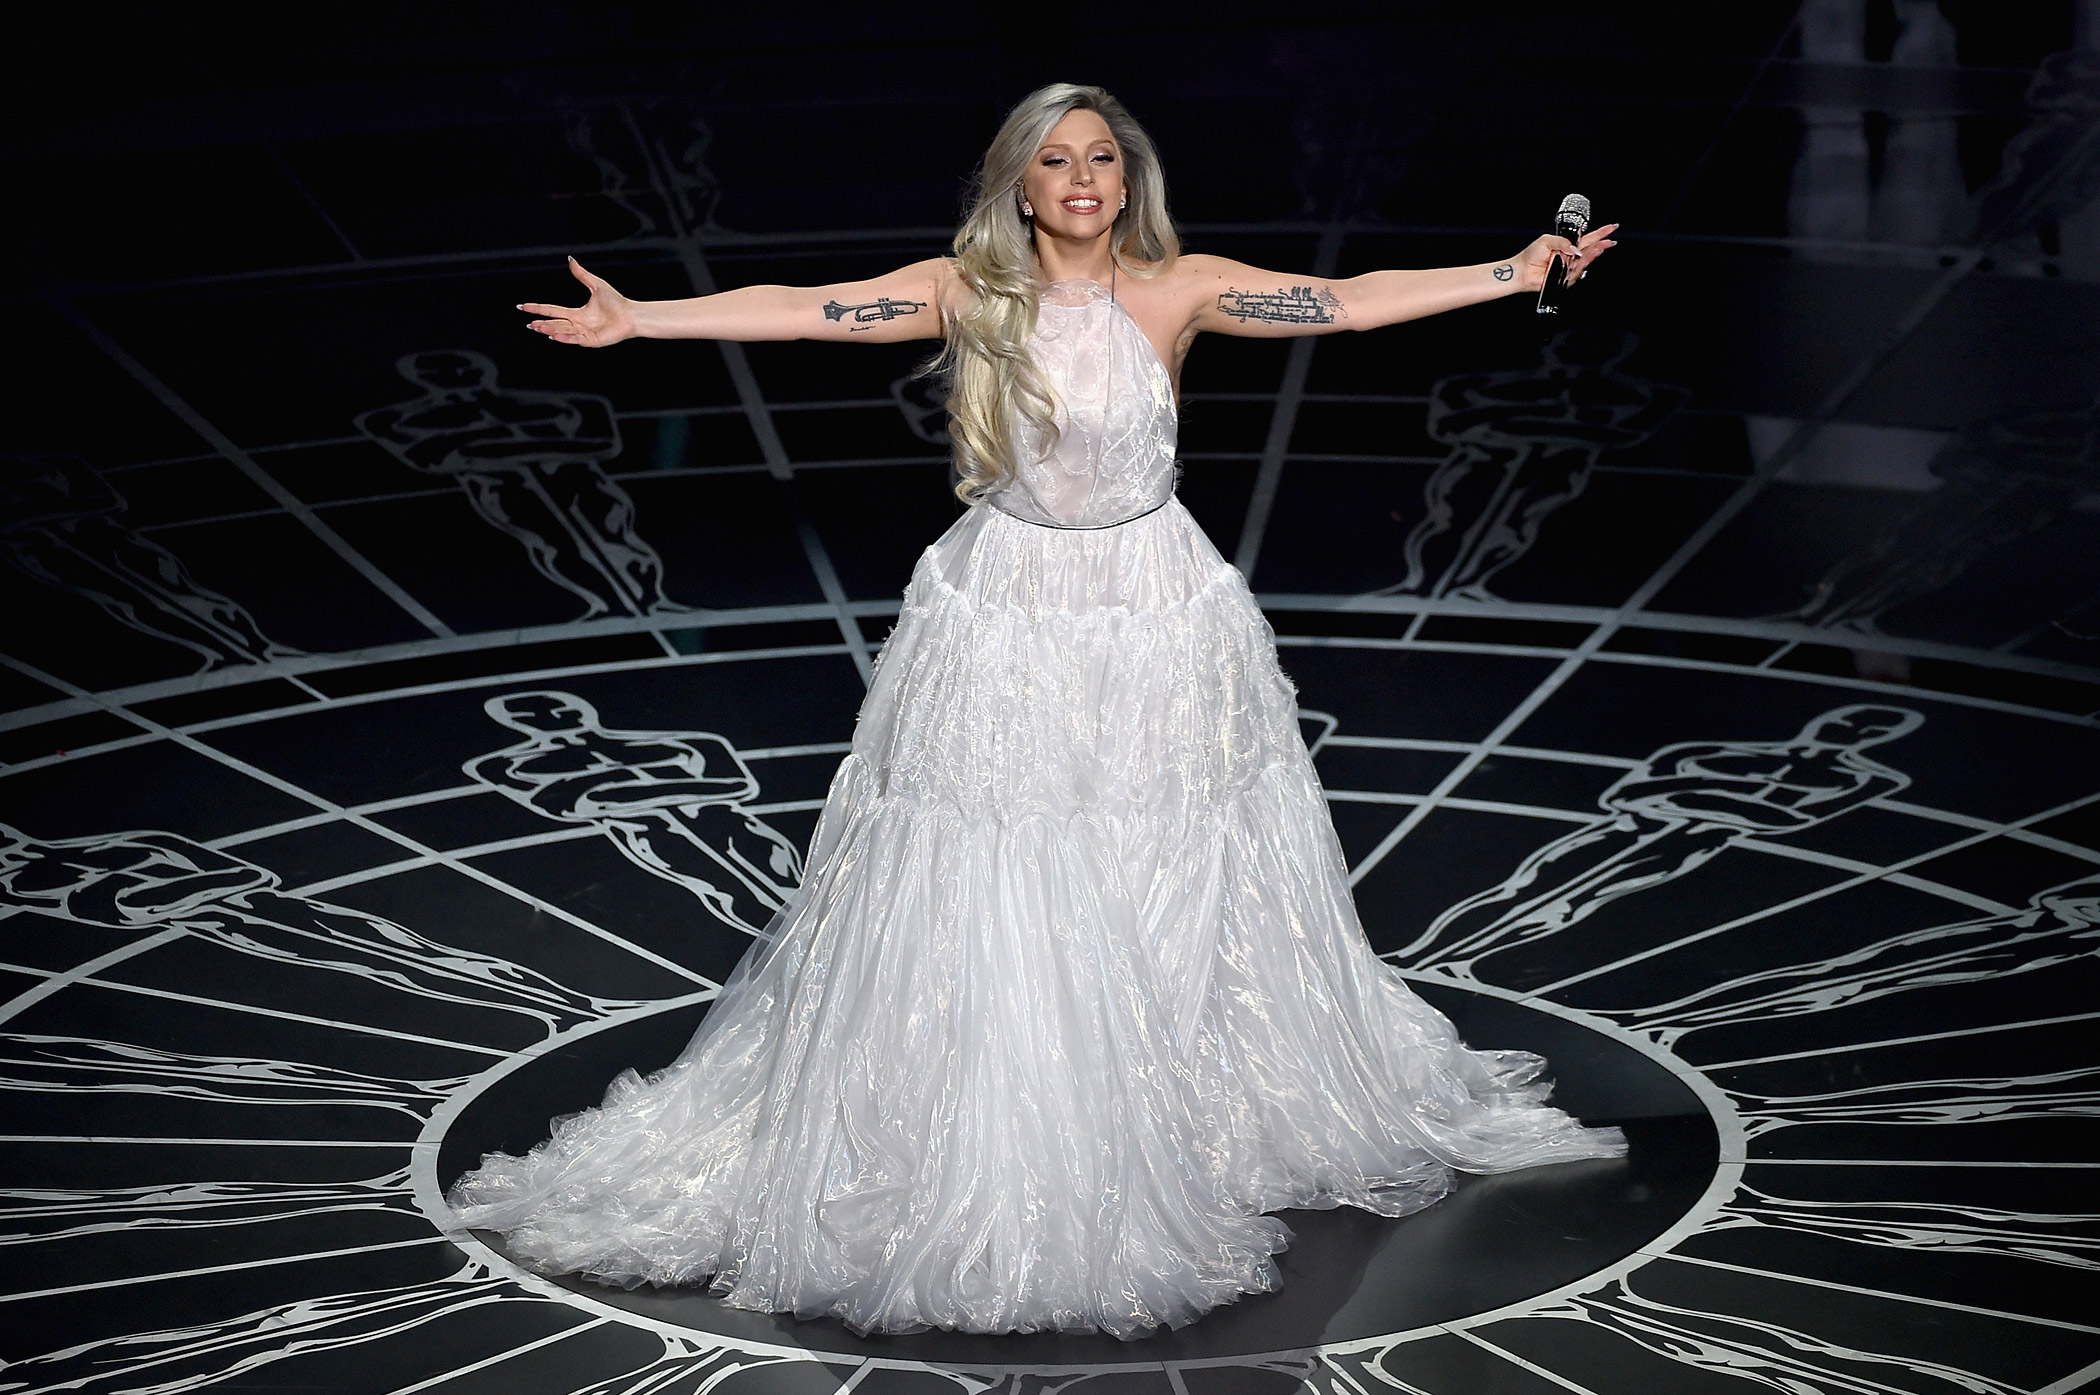 Lady Gaga performs onstage during the 87th Annual Academy Awards at Dolby Theatre on Feb. 22, 2015 in Hollywood, Calif.